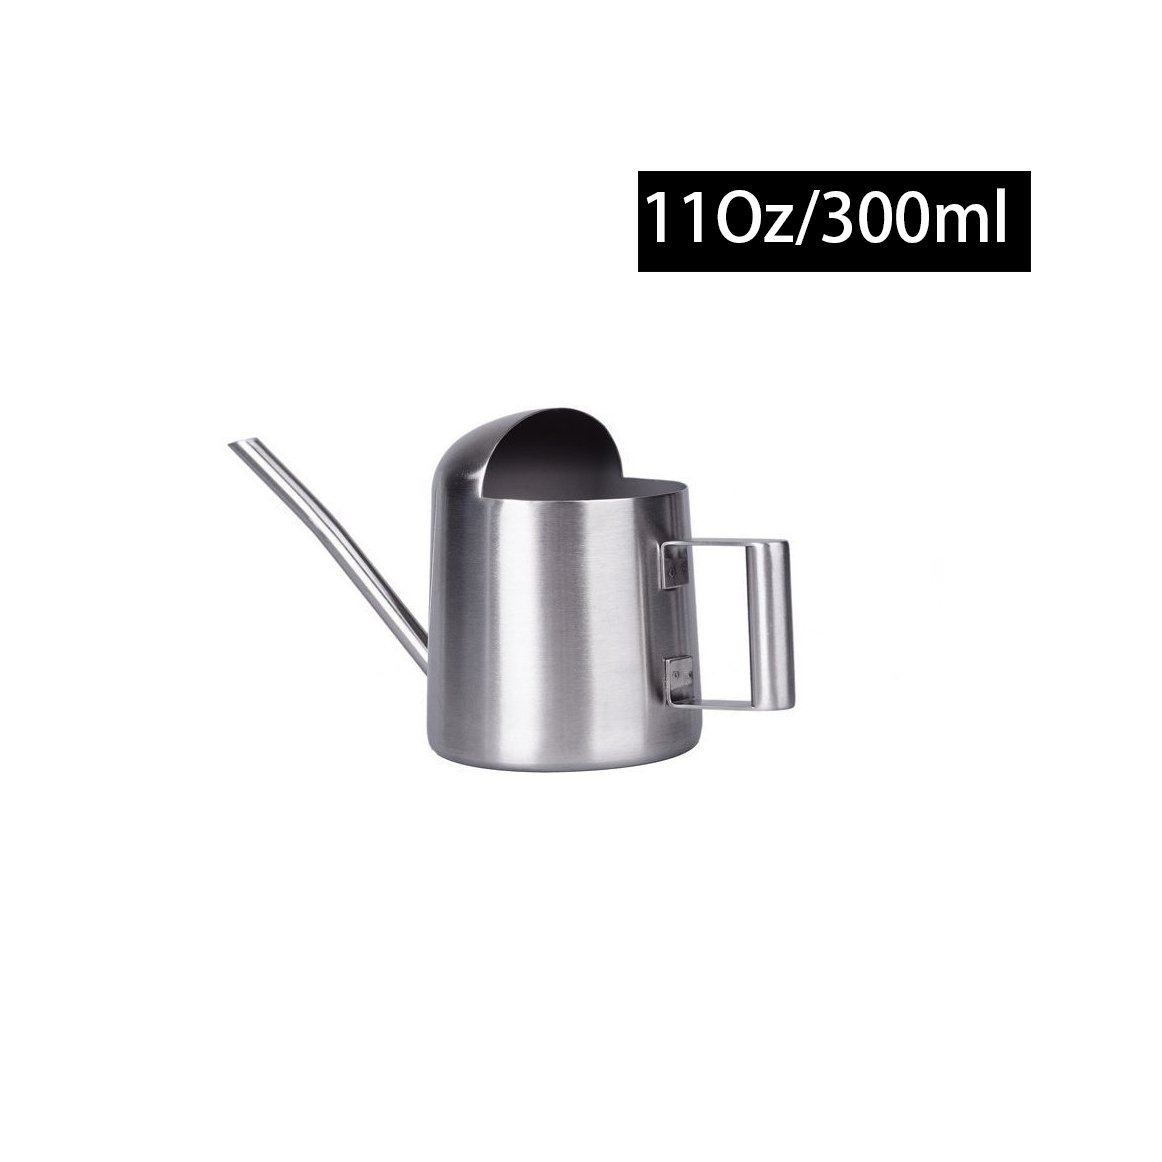 IMEEA Bonsai Watering Can Super Tiny 11OZ/300ml Mini Brushed Stainless Steel for Little Kids